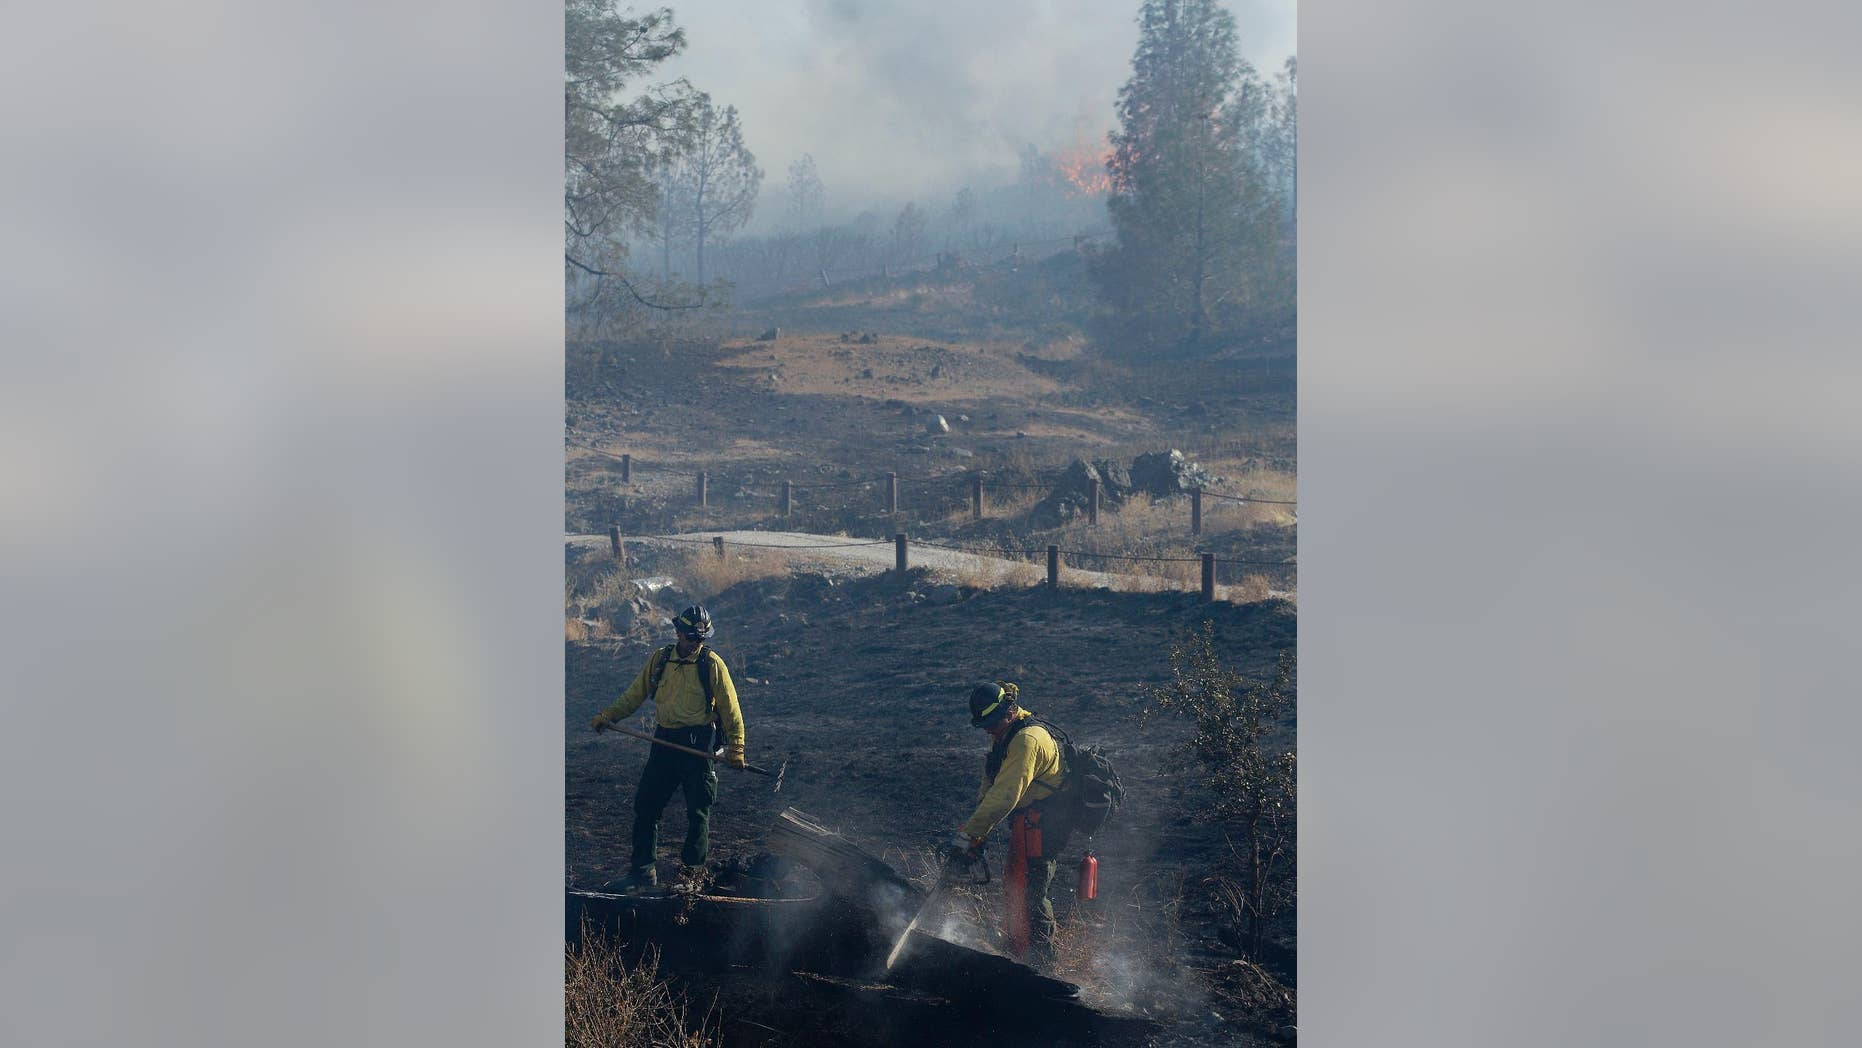 A fire crew cleans up a hot spot near Lower Lake, Calif., Thursday, Aug. 13, 2015. Crews battling the wind-stoked blaze took advantage of cooler temperatures Thursday to clear brush and expand containment lines with bulldozers and hand tools. (AP Photo/Jeff Chiu)